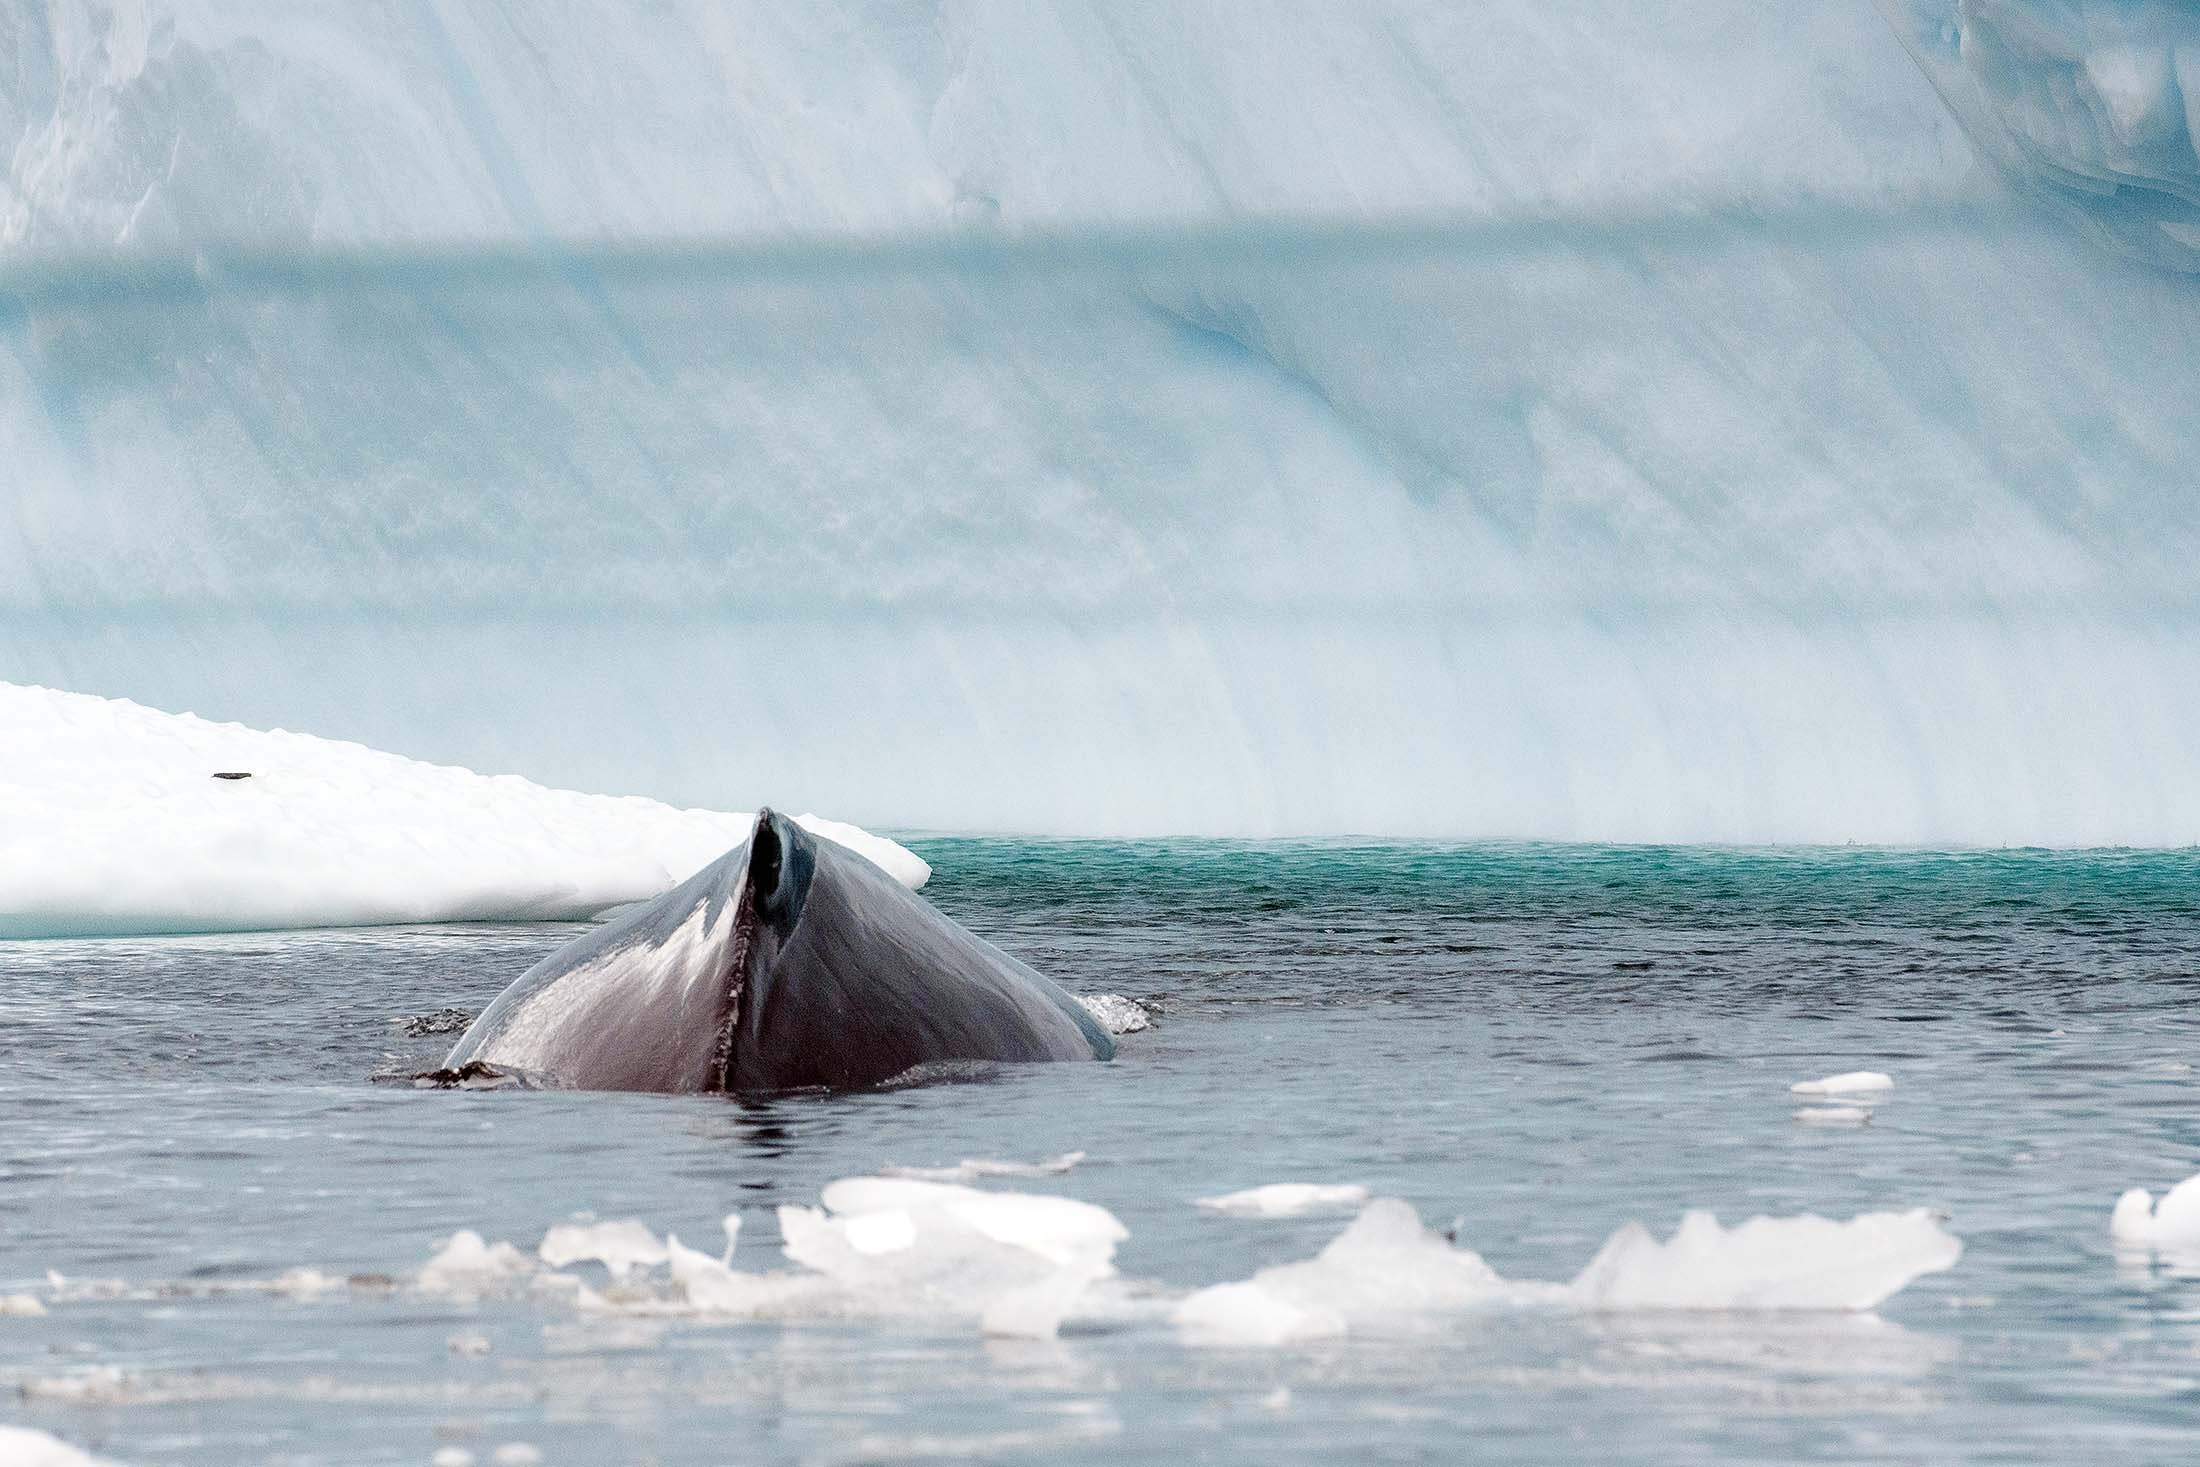 A humpback whale spotted near Danco Island on a recent Antarctica cruise.